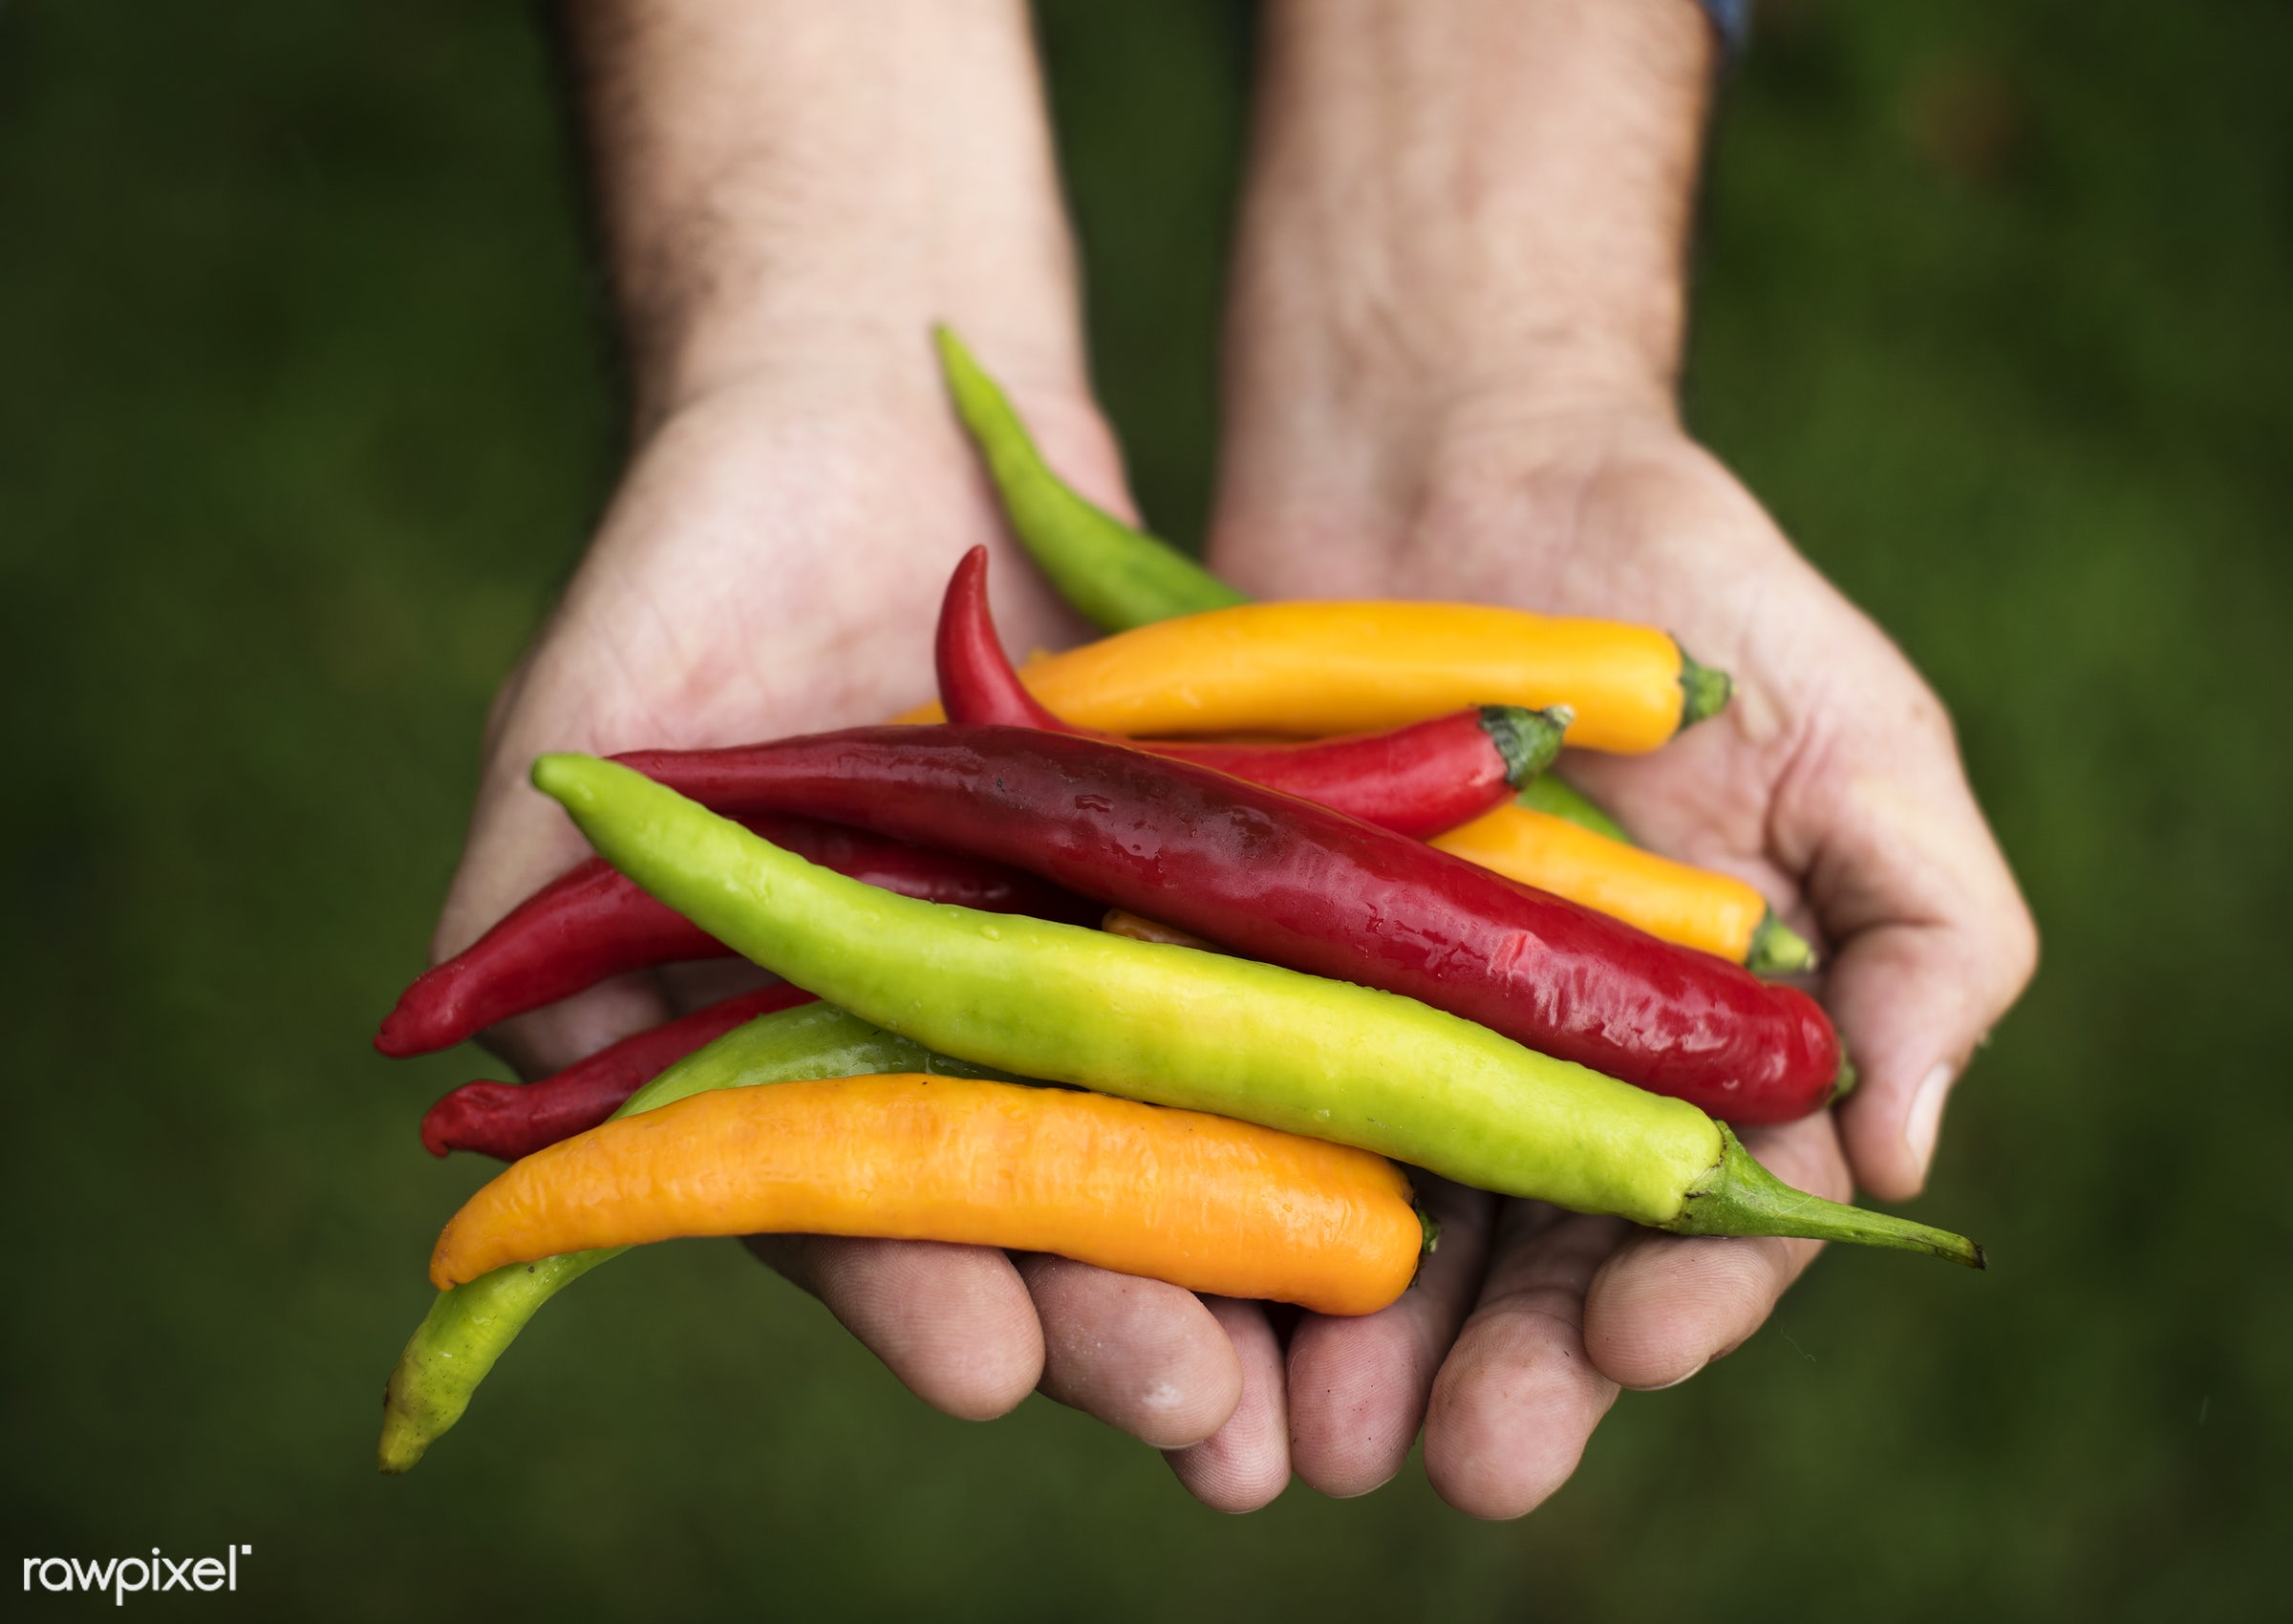 cayenne, holding, spice, nature, hands, chilli, closeup, mexican, chili, organic, food, healthy, gardening, harvest,...